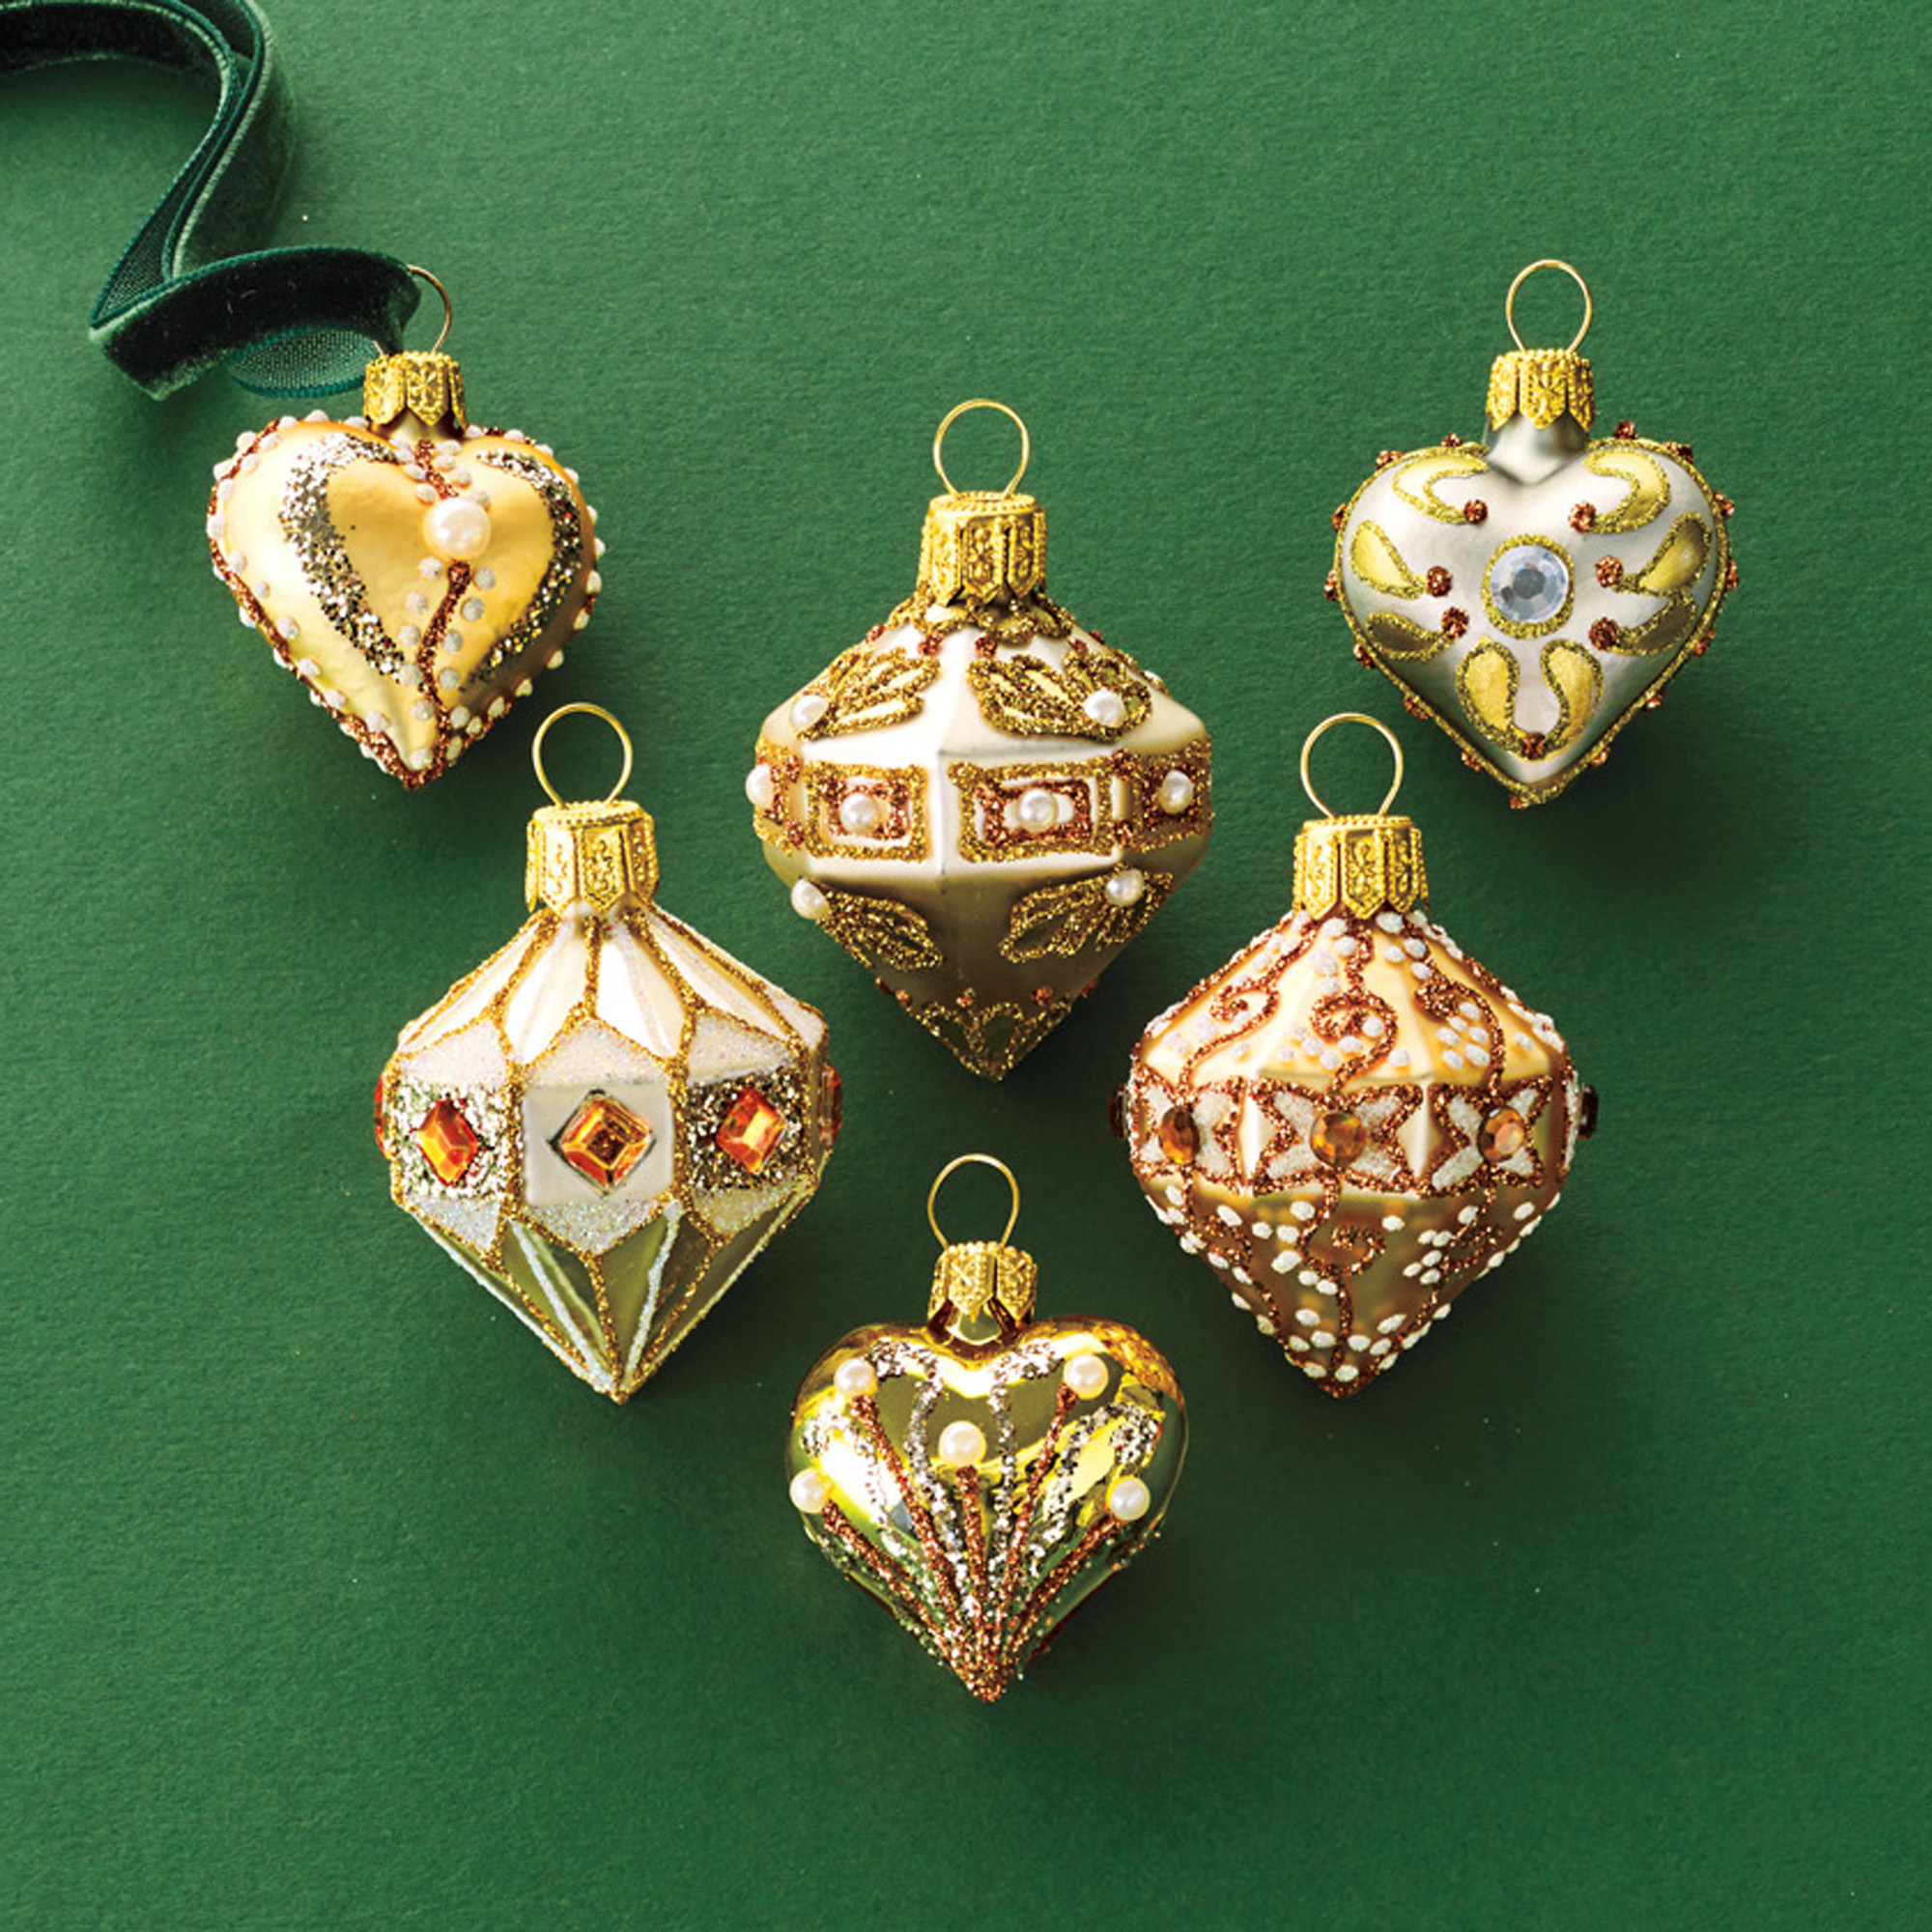 Mini Heart & Top Ornaments